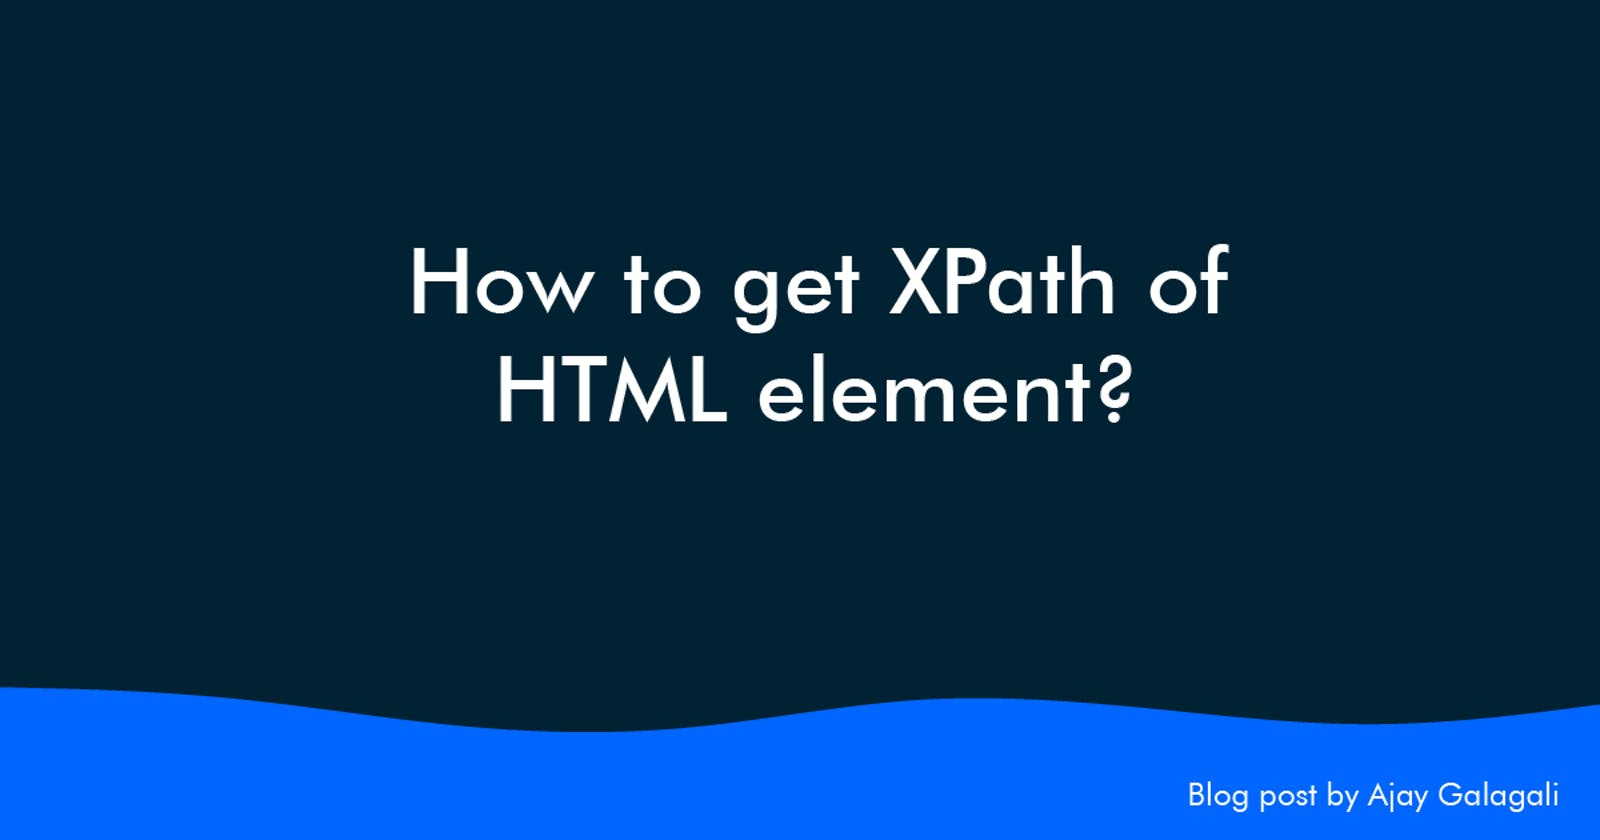 How to get XPath of HTML element?